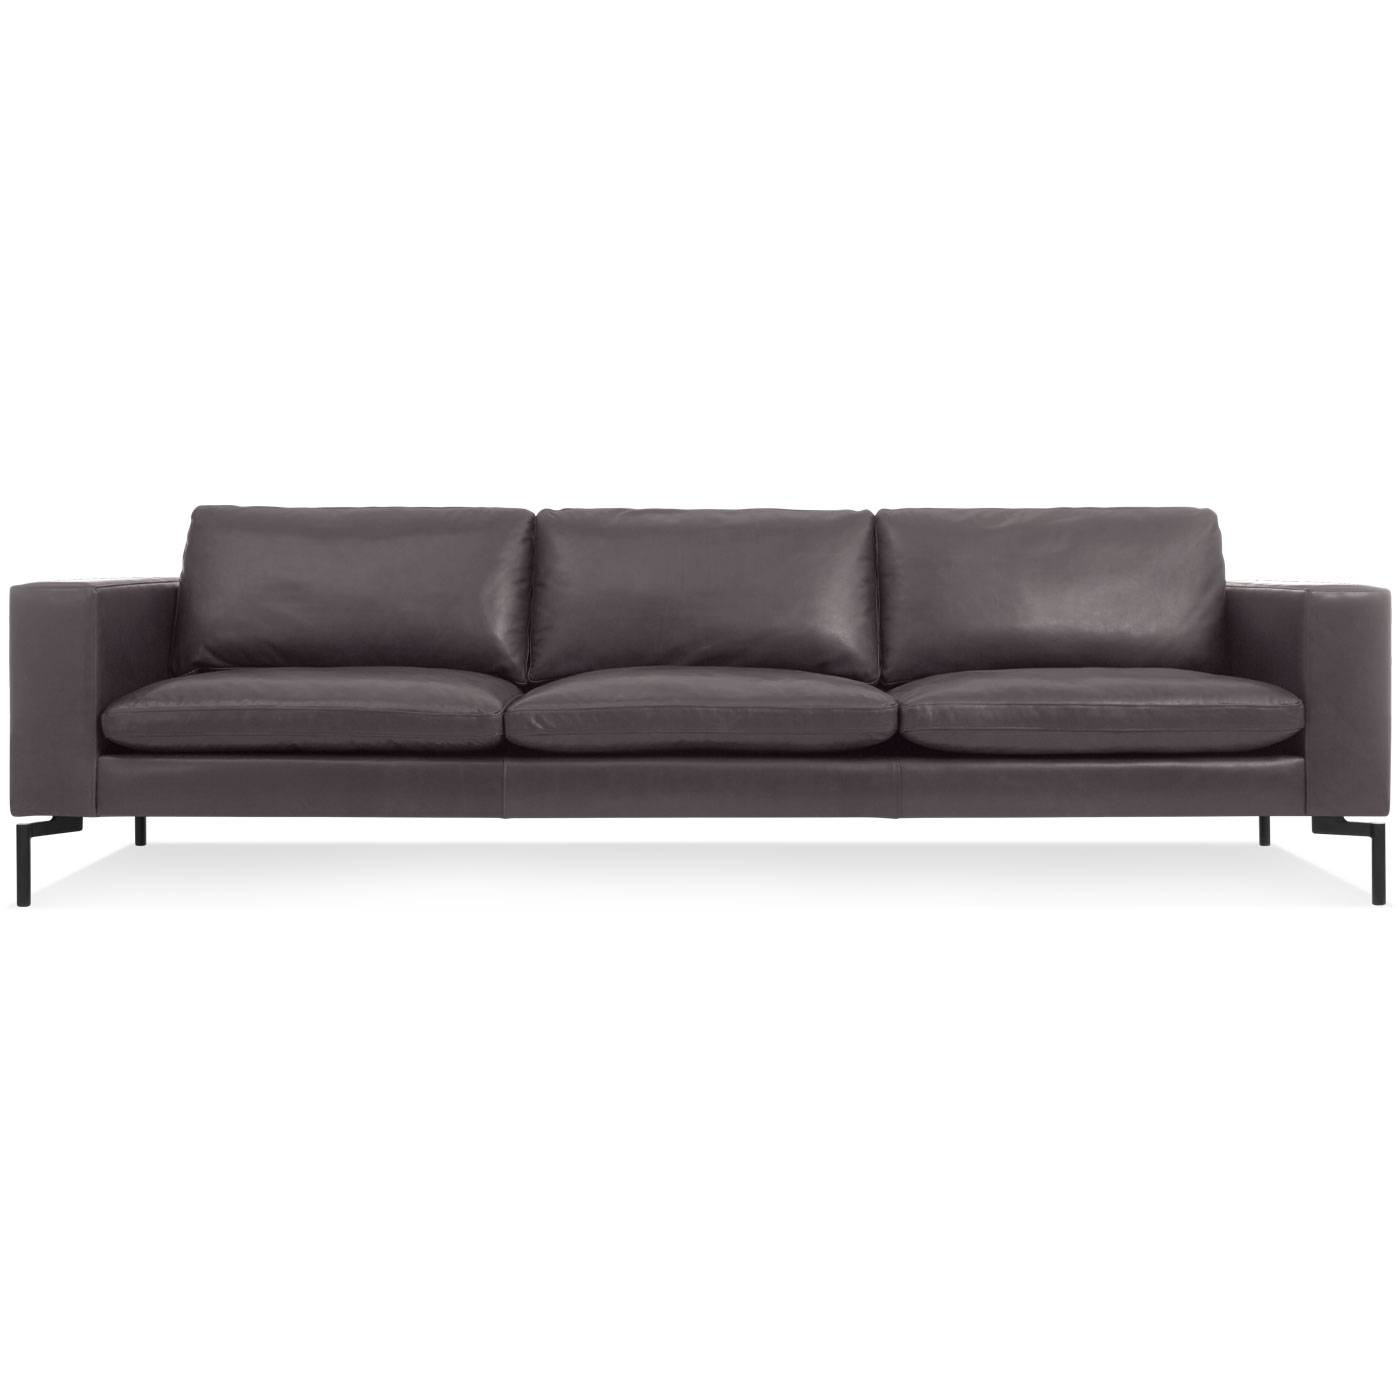 New Standard 104 Inch Leather Sofa – Modern Sofas And Sectionals Within 4 Seat Leather Sofas (View 16 of 30)